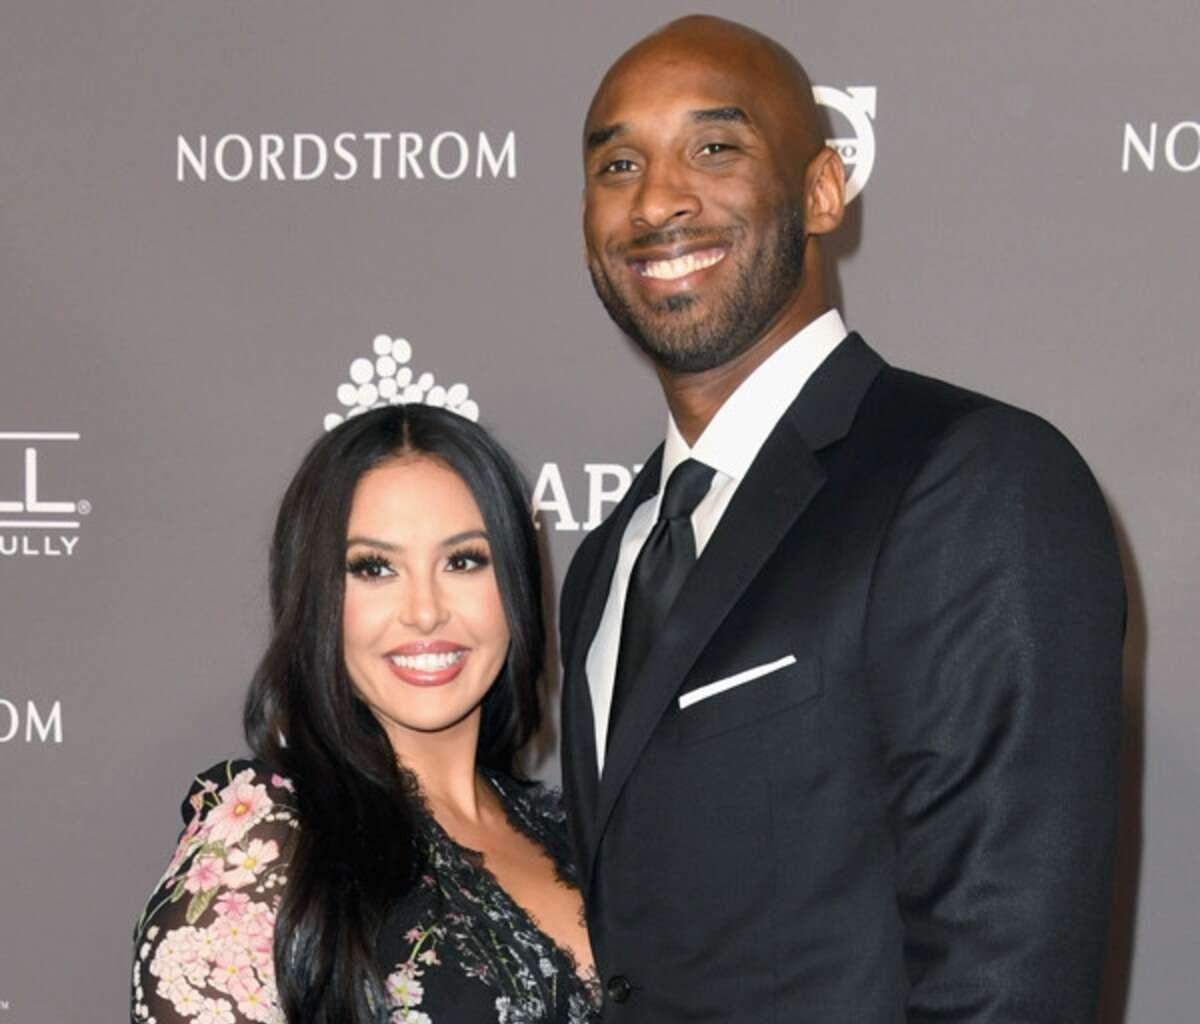 Vanessa Bryant Is Celebrating Her 38th Birthday With Her Daughters - Capri Is Twinning With her Dad, Kobe Bryant